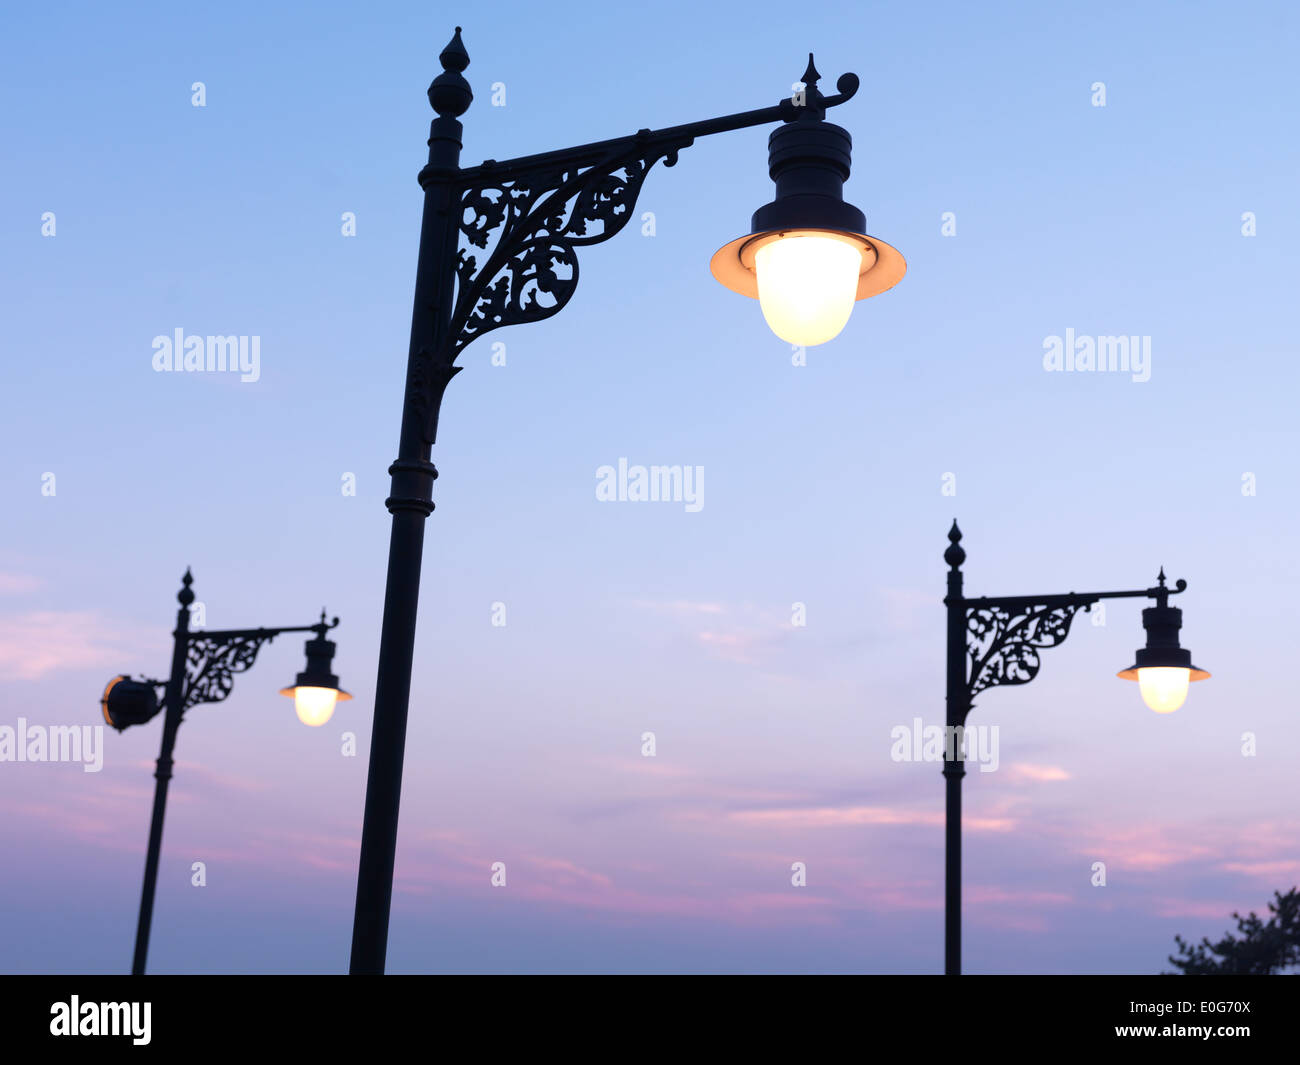 Vintage street lamps over sunset sky background - Stock Image